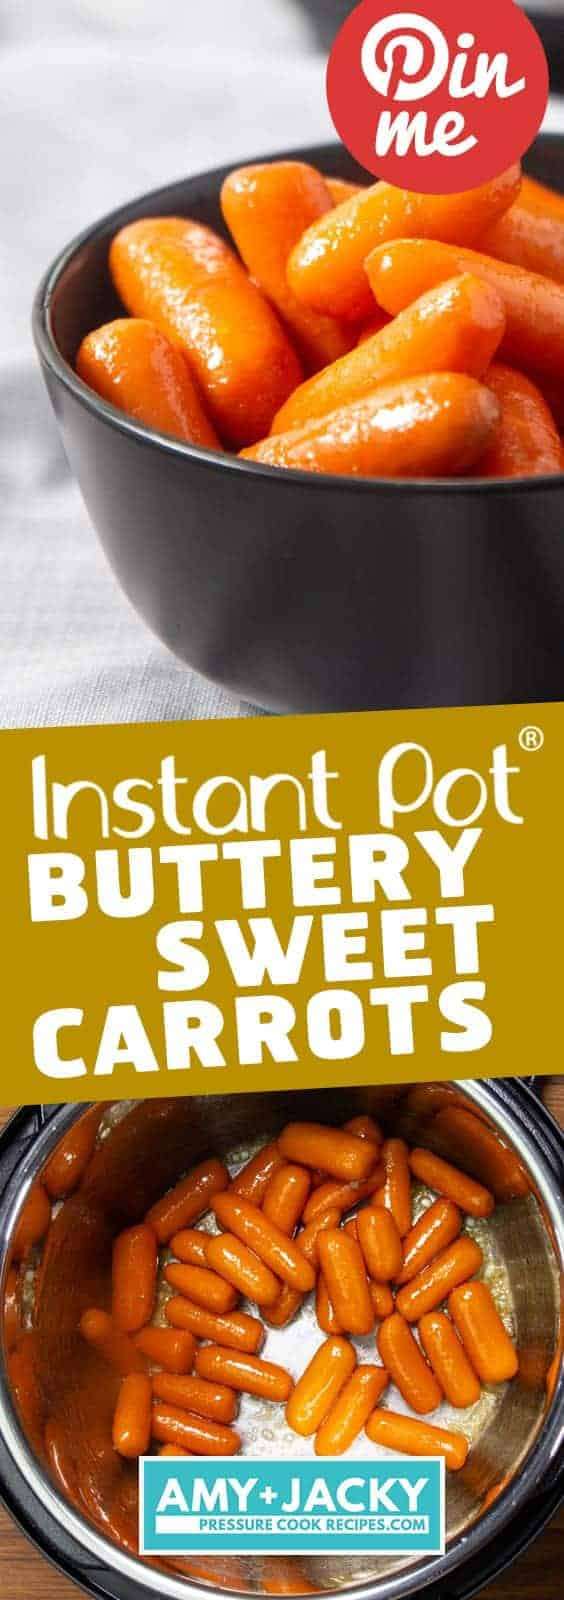 Instant Pot Carrots | Pressure Cooker Carrots | Instant Pot Vegetables | Instant Pot Side Dishes | Instant Pot Vegetarian | Instant Pot Recipes | Pressure Cooker Recipes  #instantpot #pressurecooker #side #snack #vegetables